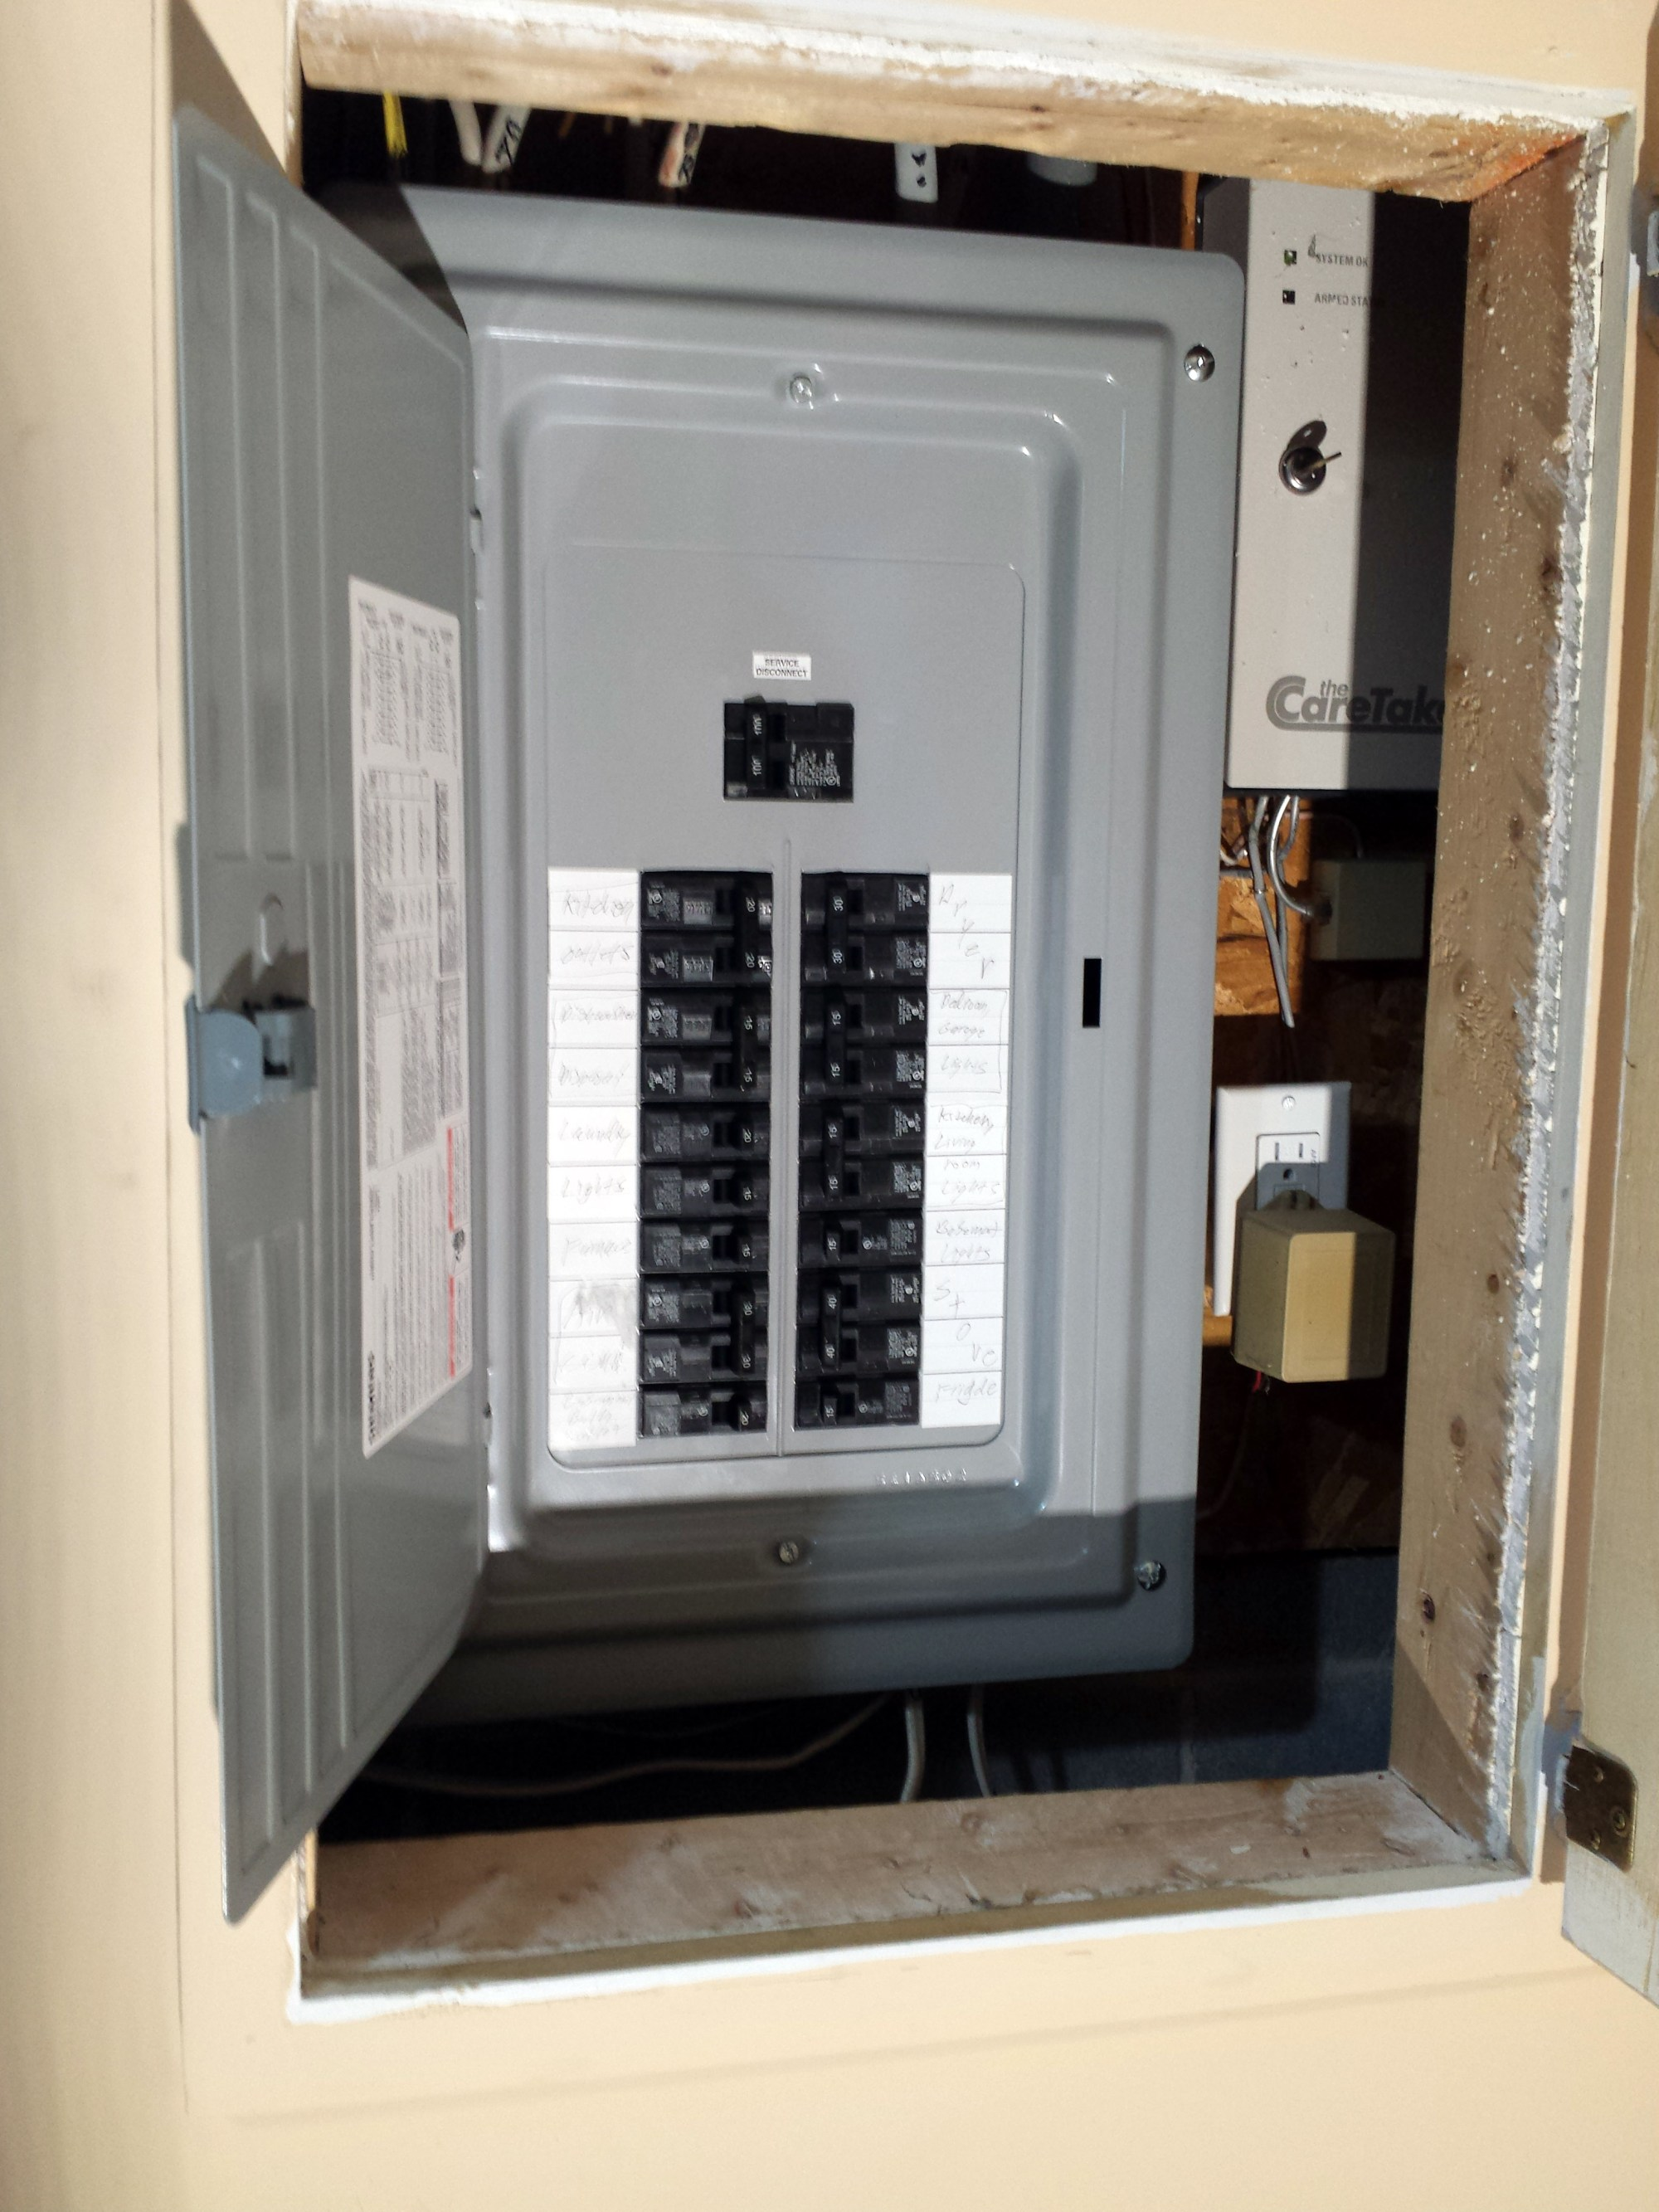 hight resolution of replace fuse box replace fpe breakers total electric 100 amp fuse box replacement in coon rapids